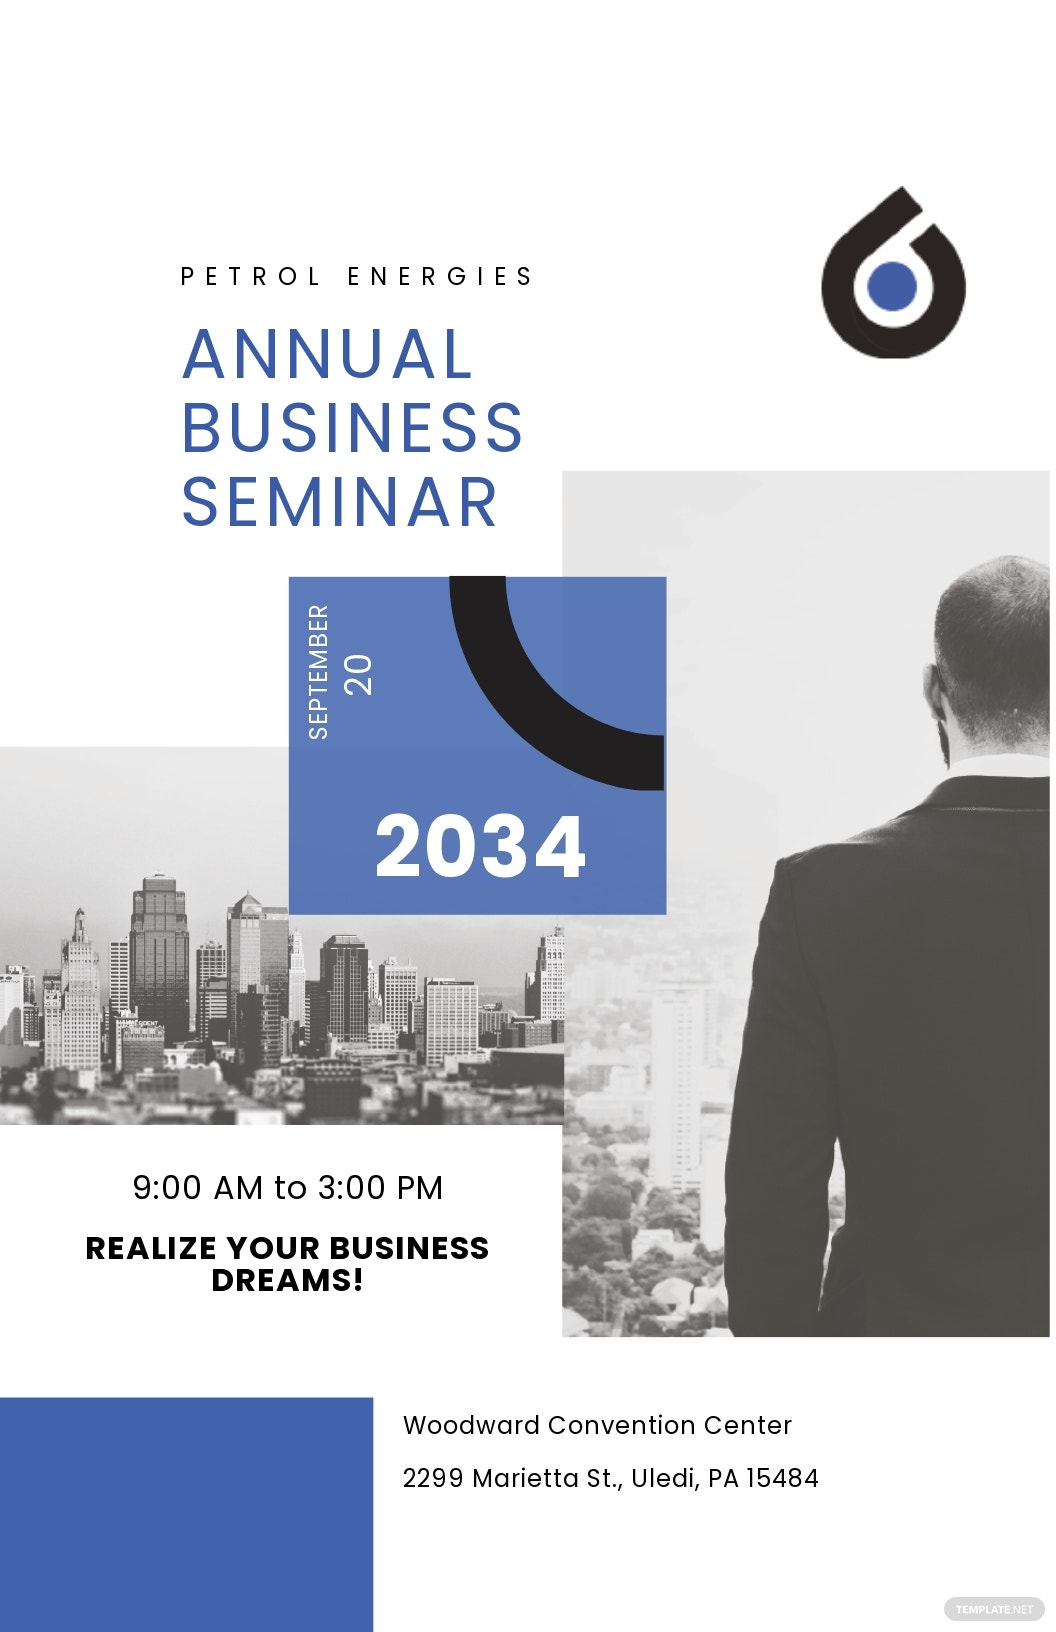 Business Seminar Poster Template [Free JPG] - Illustrator, Apple Pages, PSD